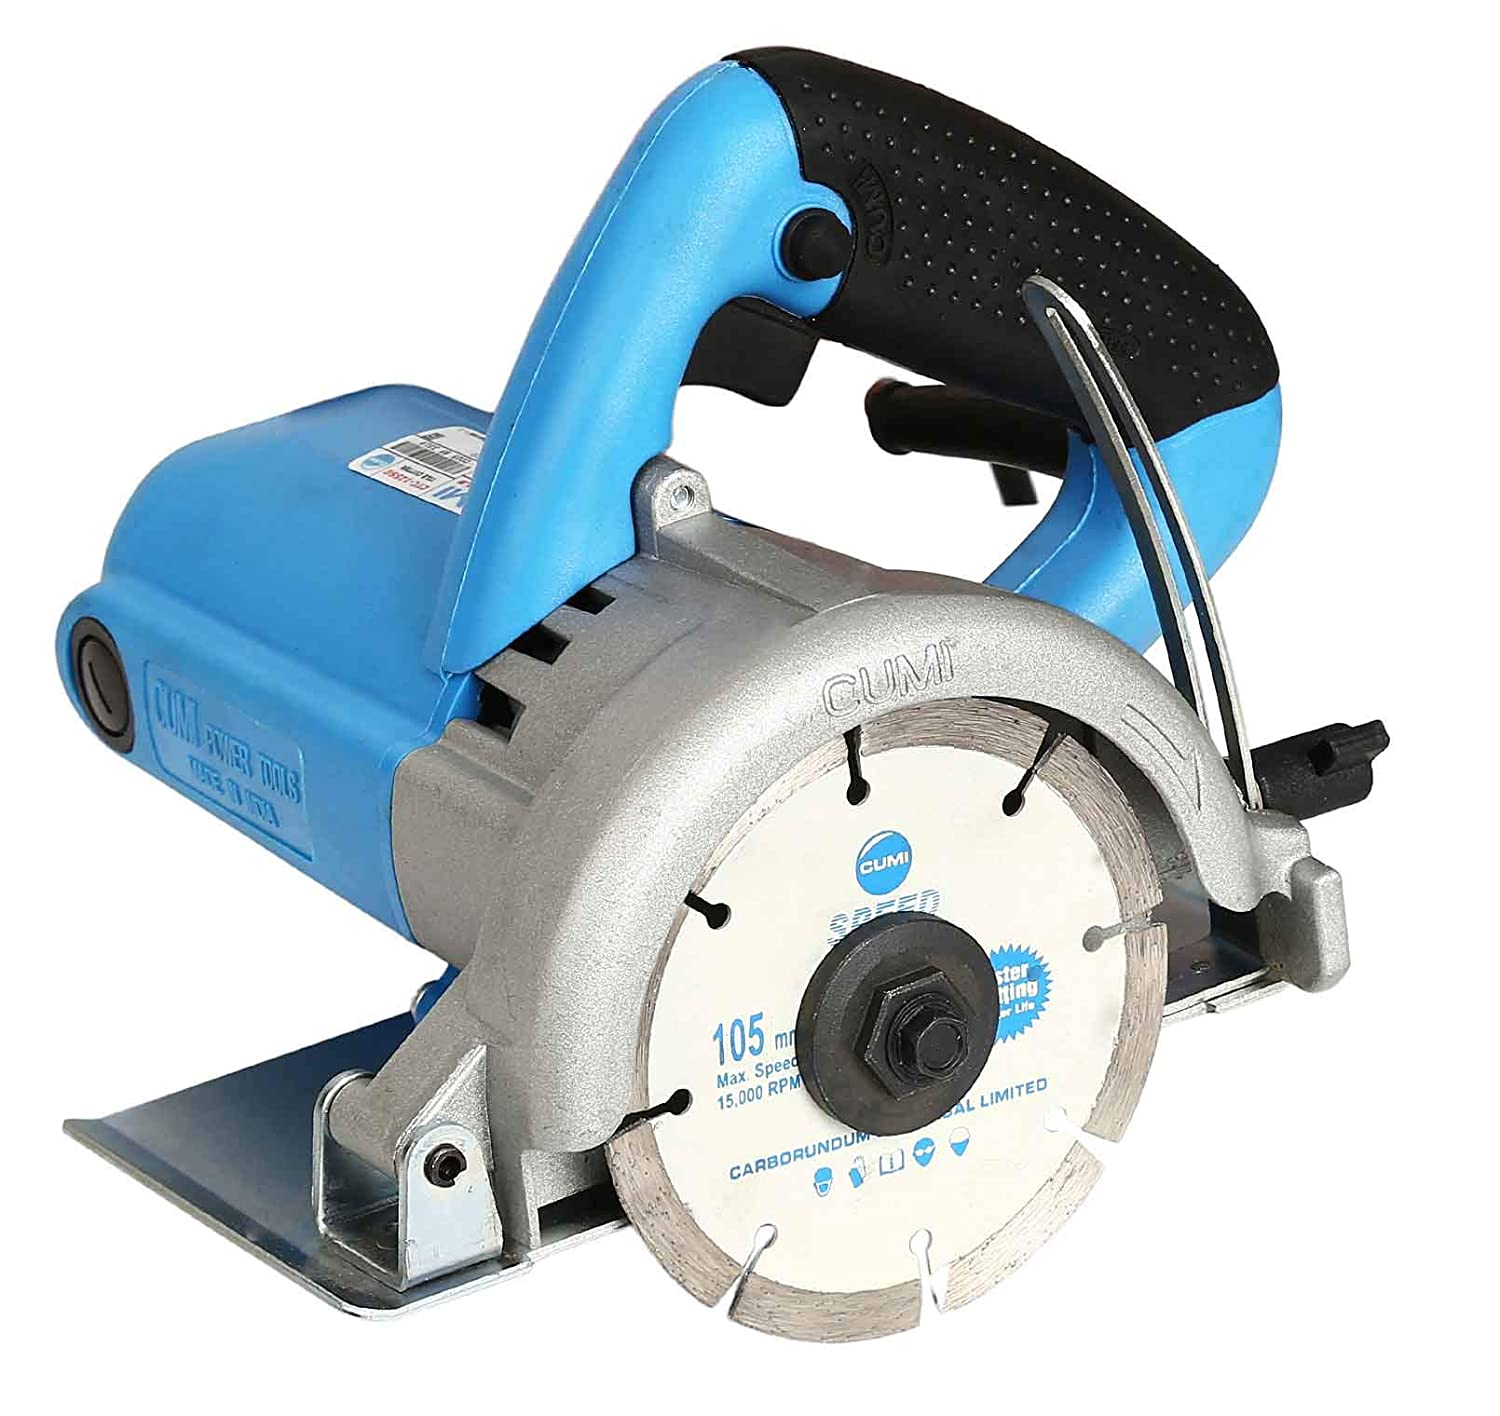 Cumi Nylon 5-inch Tile Cutter 1350 Watts -CTC 125 SG (Blue)